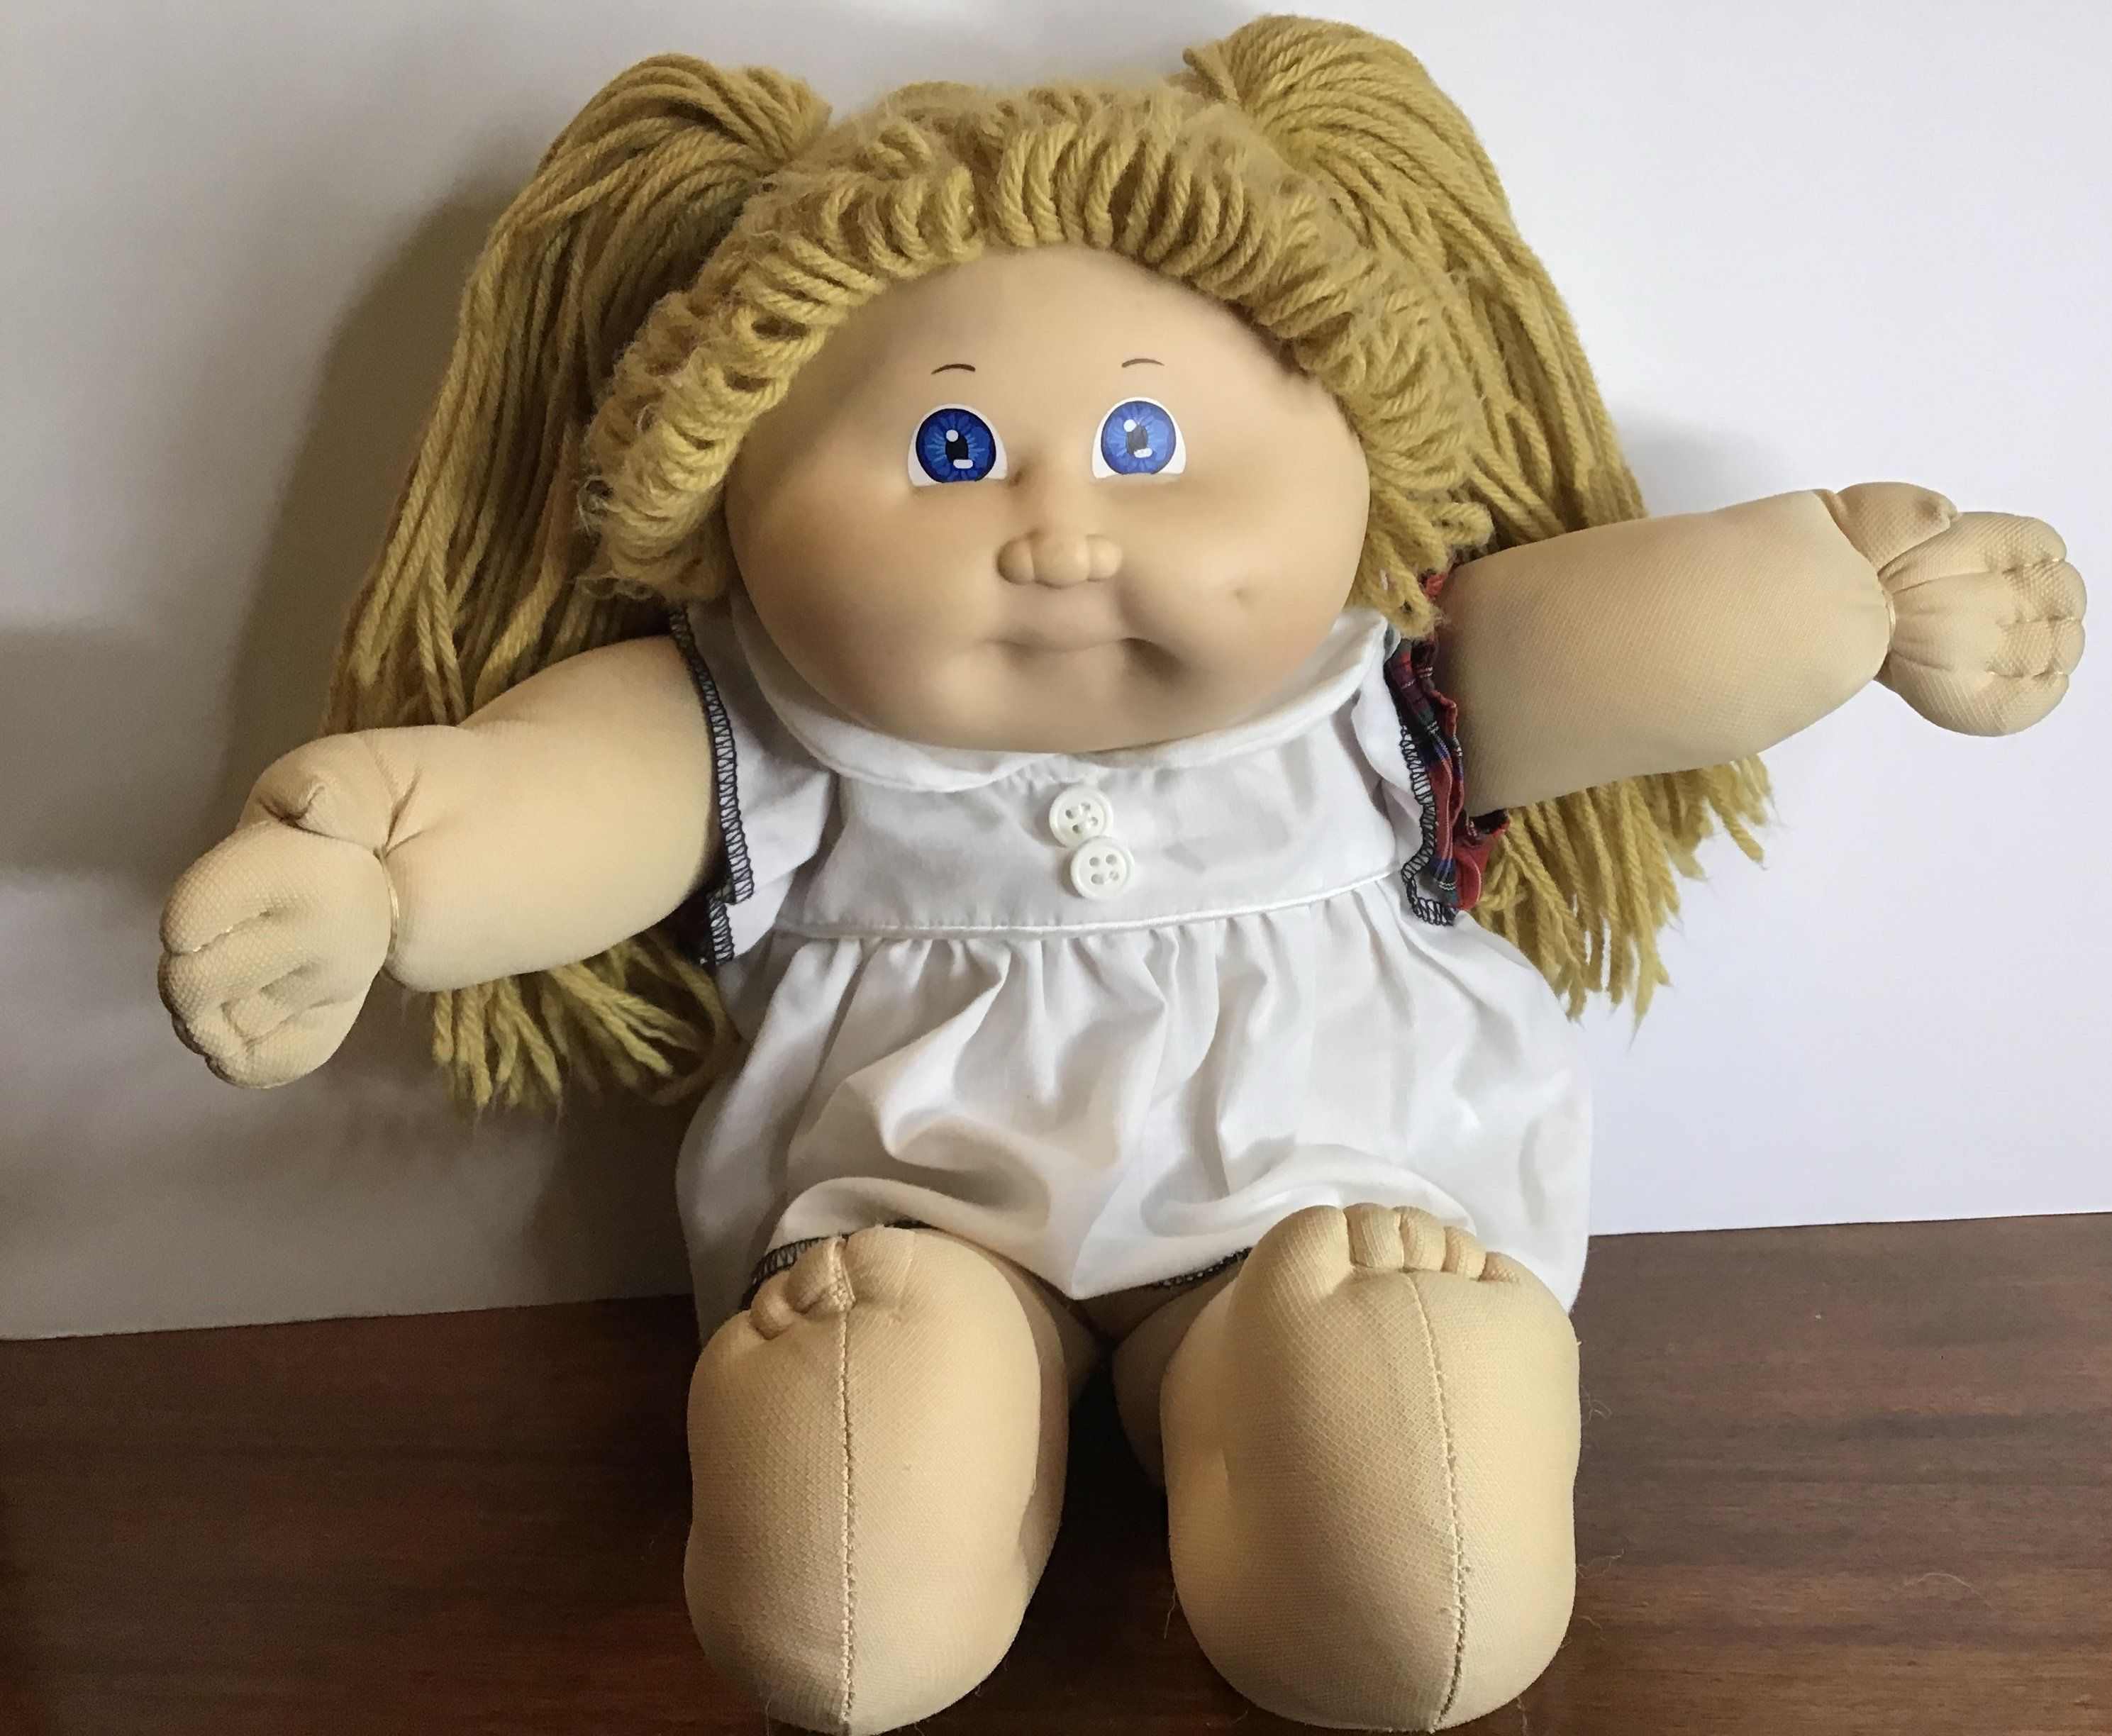 Vintage Cabbage Patch Kids Doll Blonde Hair In Pig Tails Blue Eyes 1982 Cabbage Patch Kids Child Doll Patch Kids